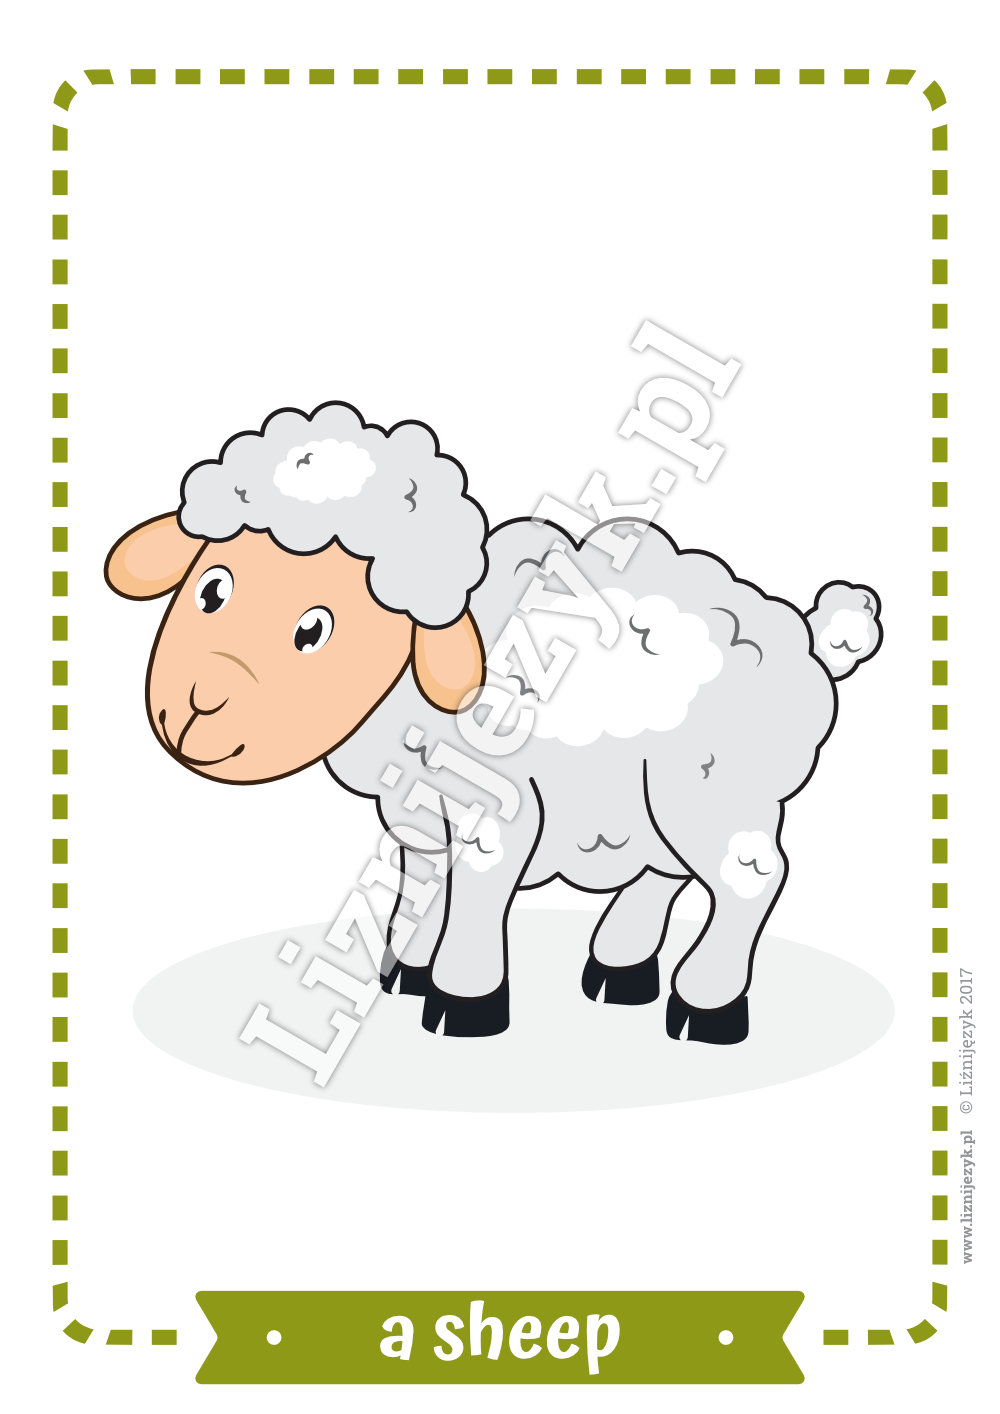 Farm Animals English Flashcards Farm animals, Animals